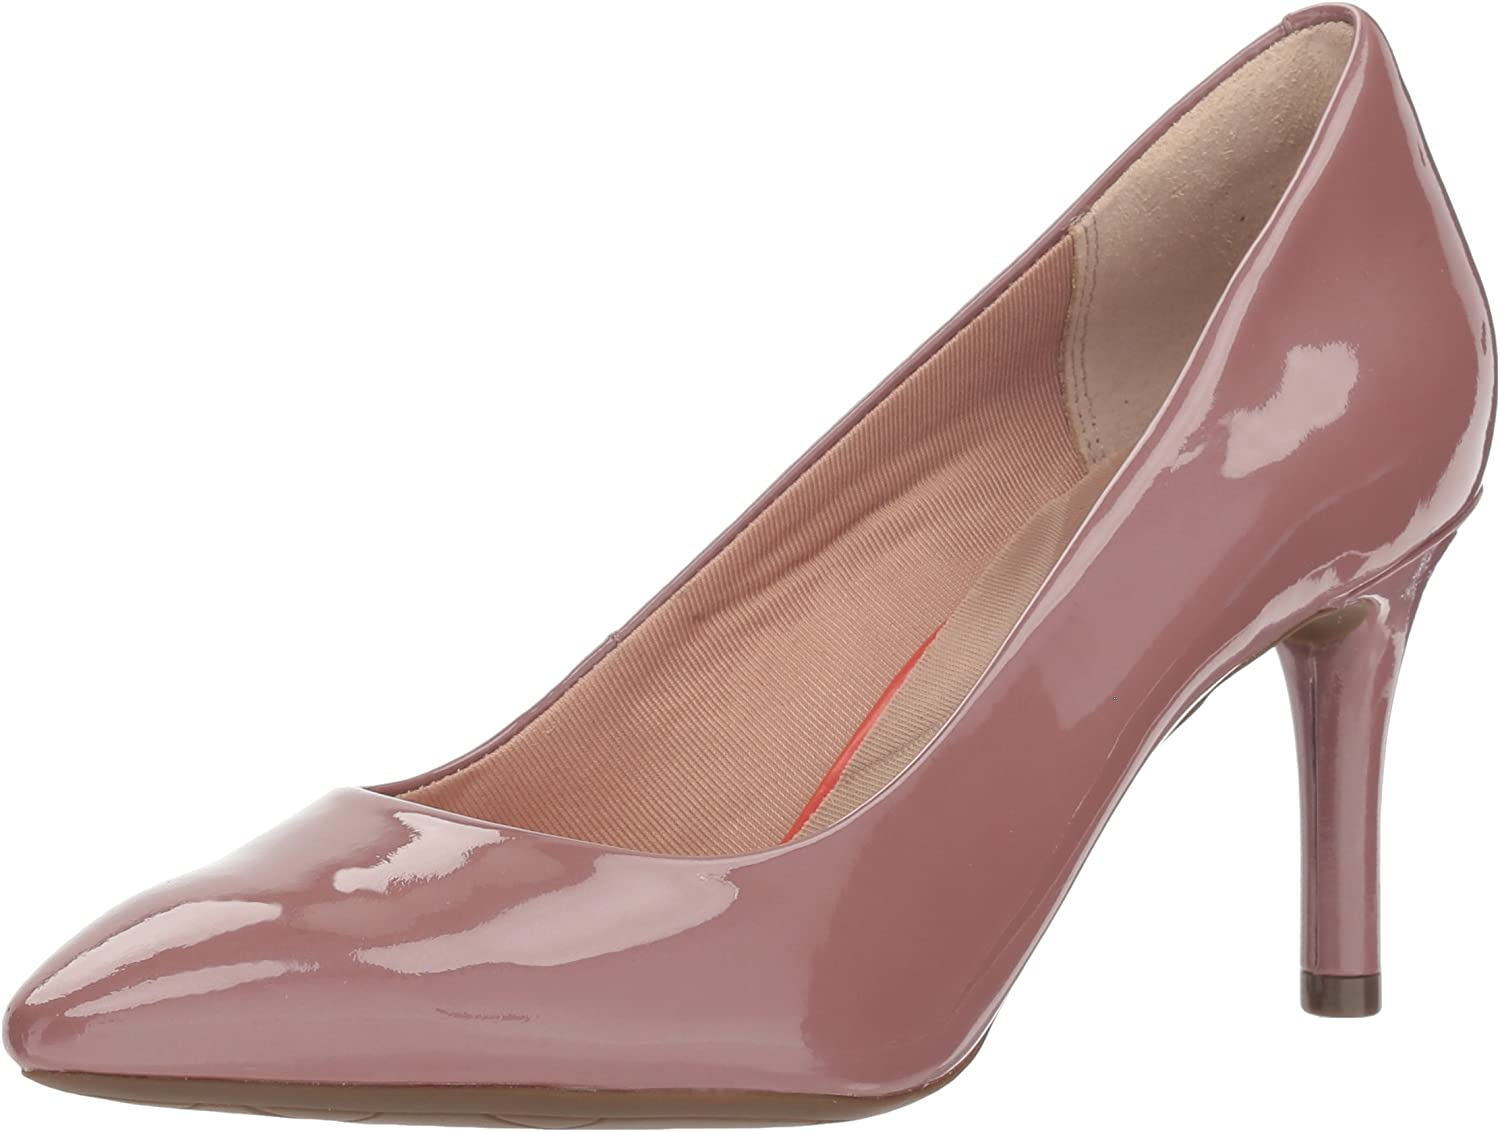 Rockport Women's Total Motion 75mm Pointy Pump Plain Toe Genuine Sale item Free Shipping